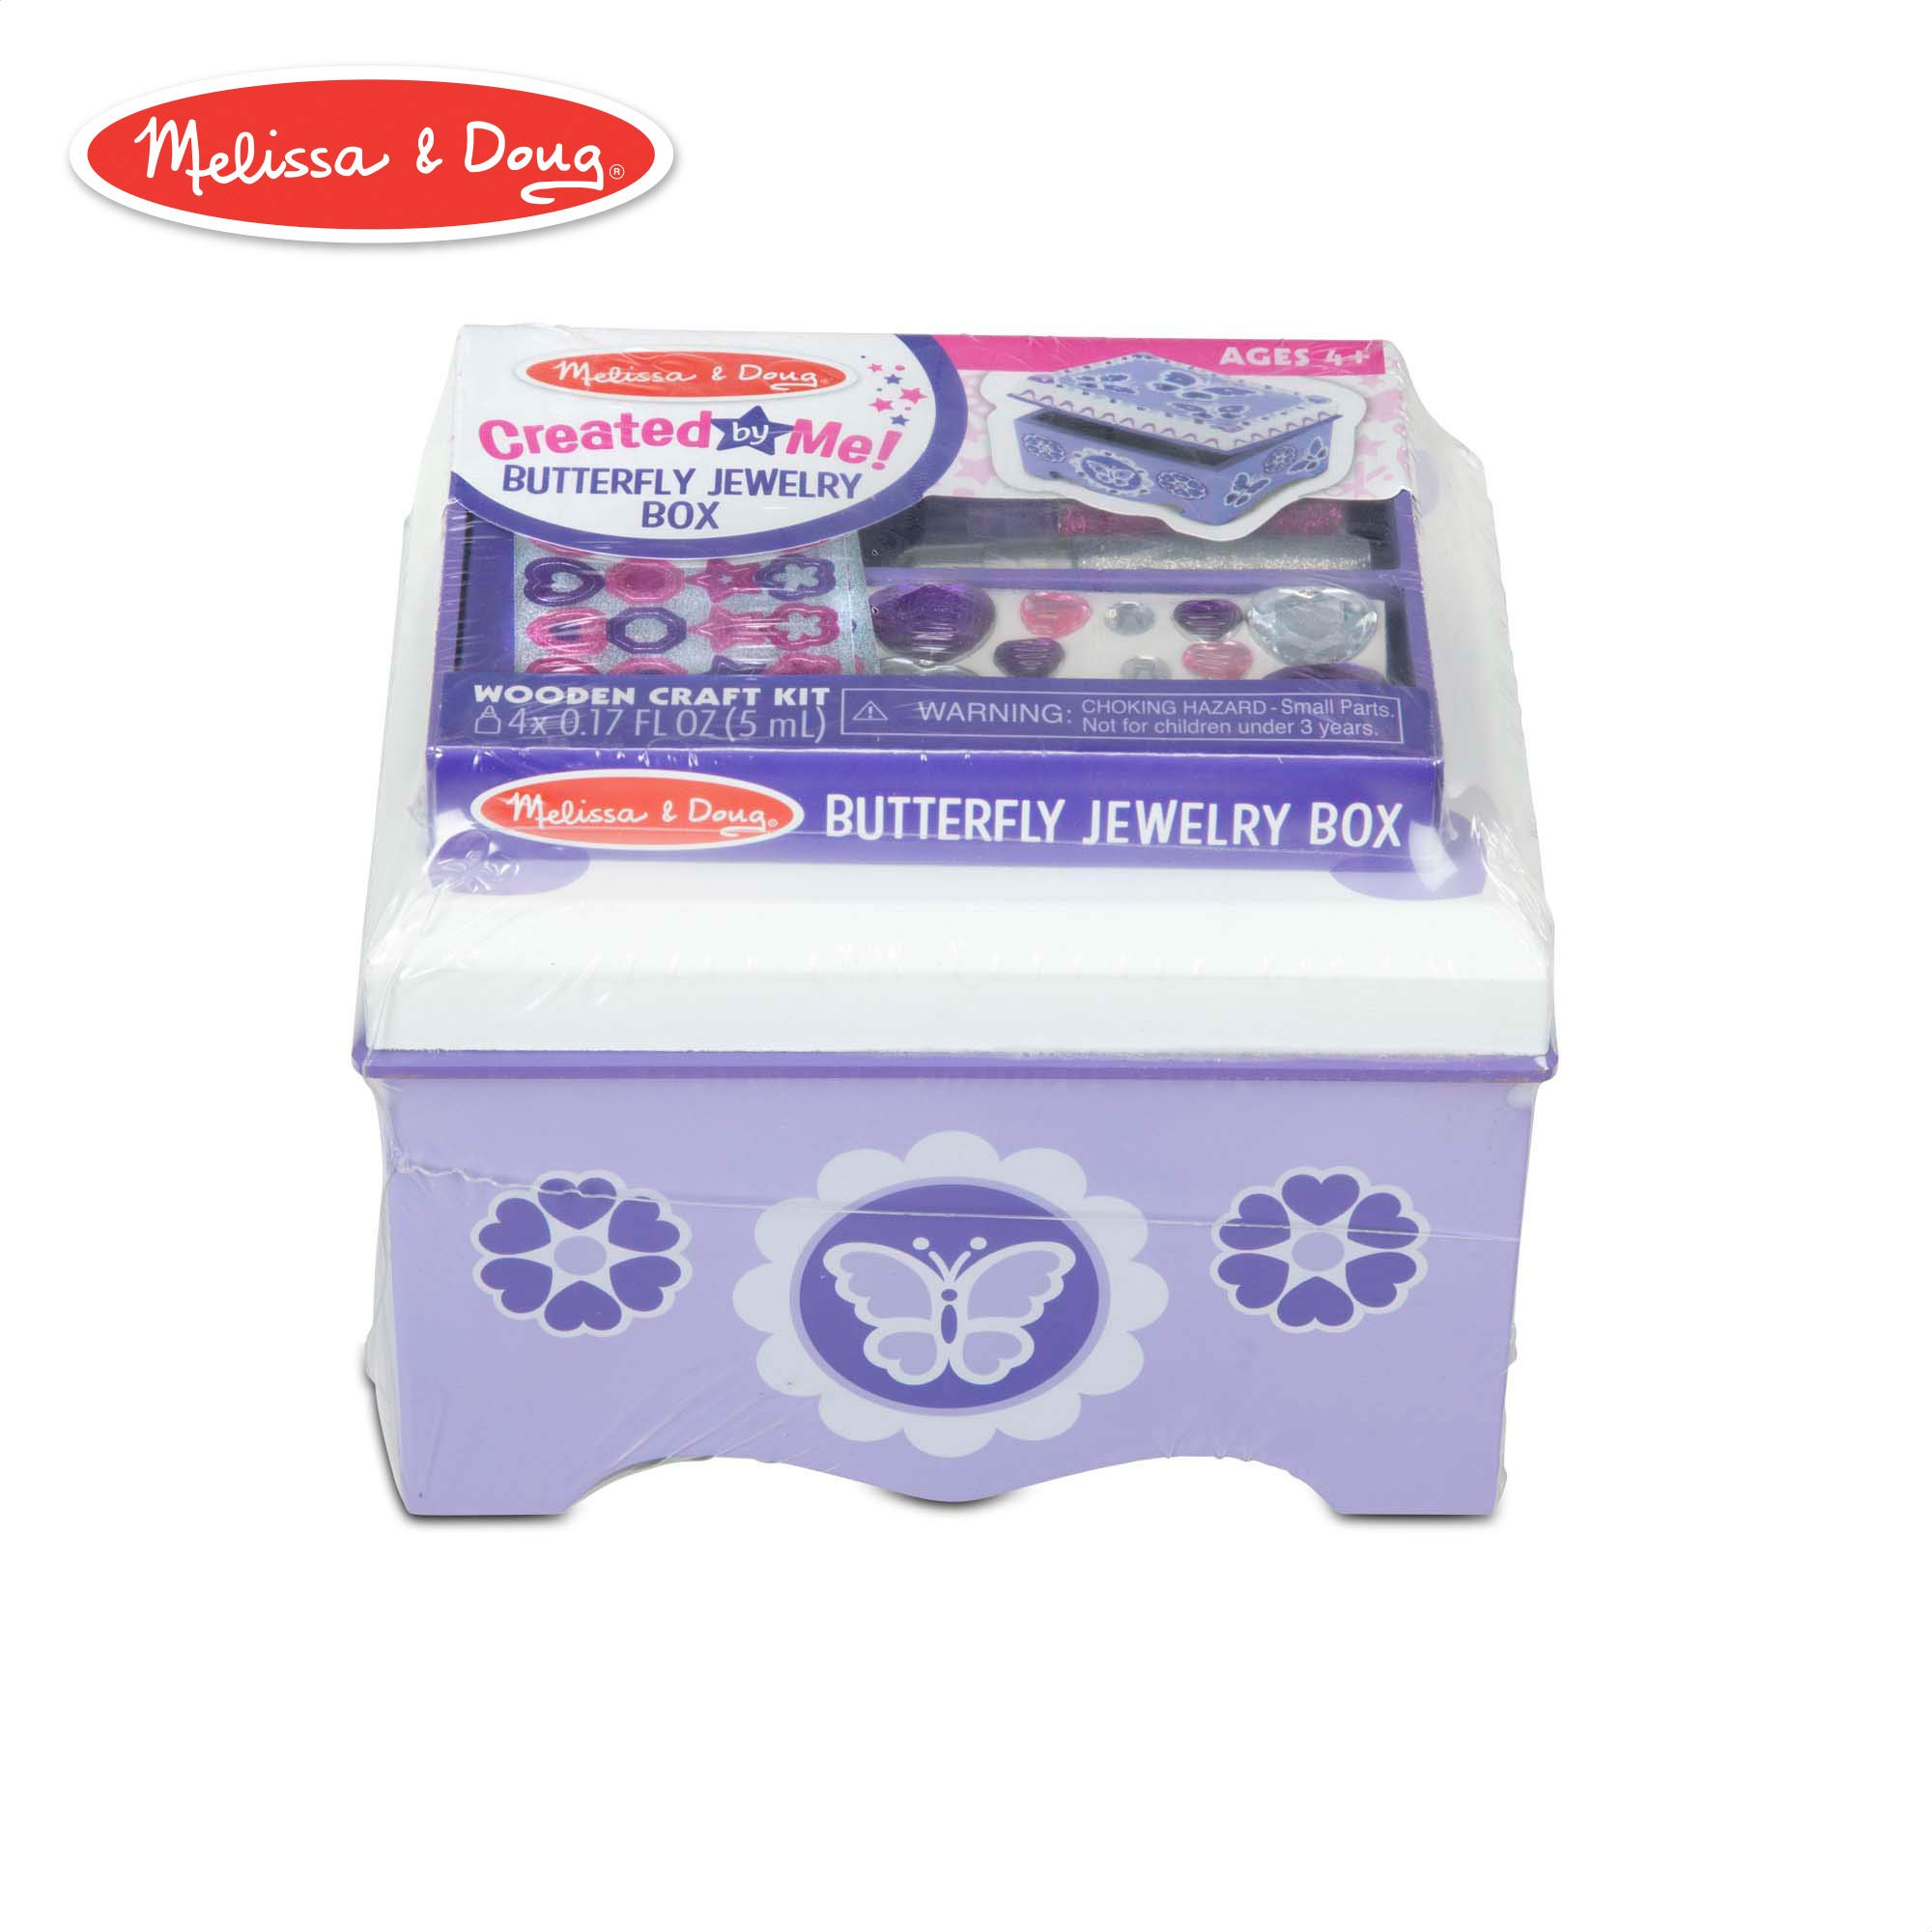 Melissa & Doug Created by Me! Purple Wooden Butterfly Jewelry Box Craft Kit by Melissa & Doug